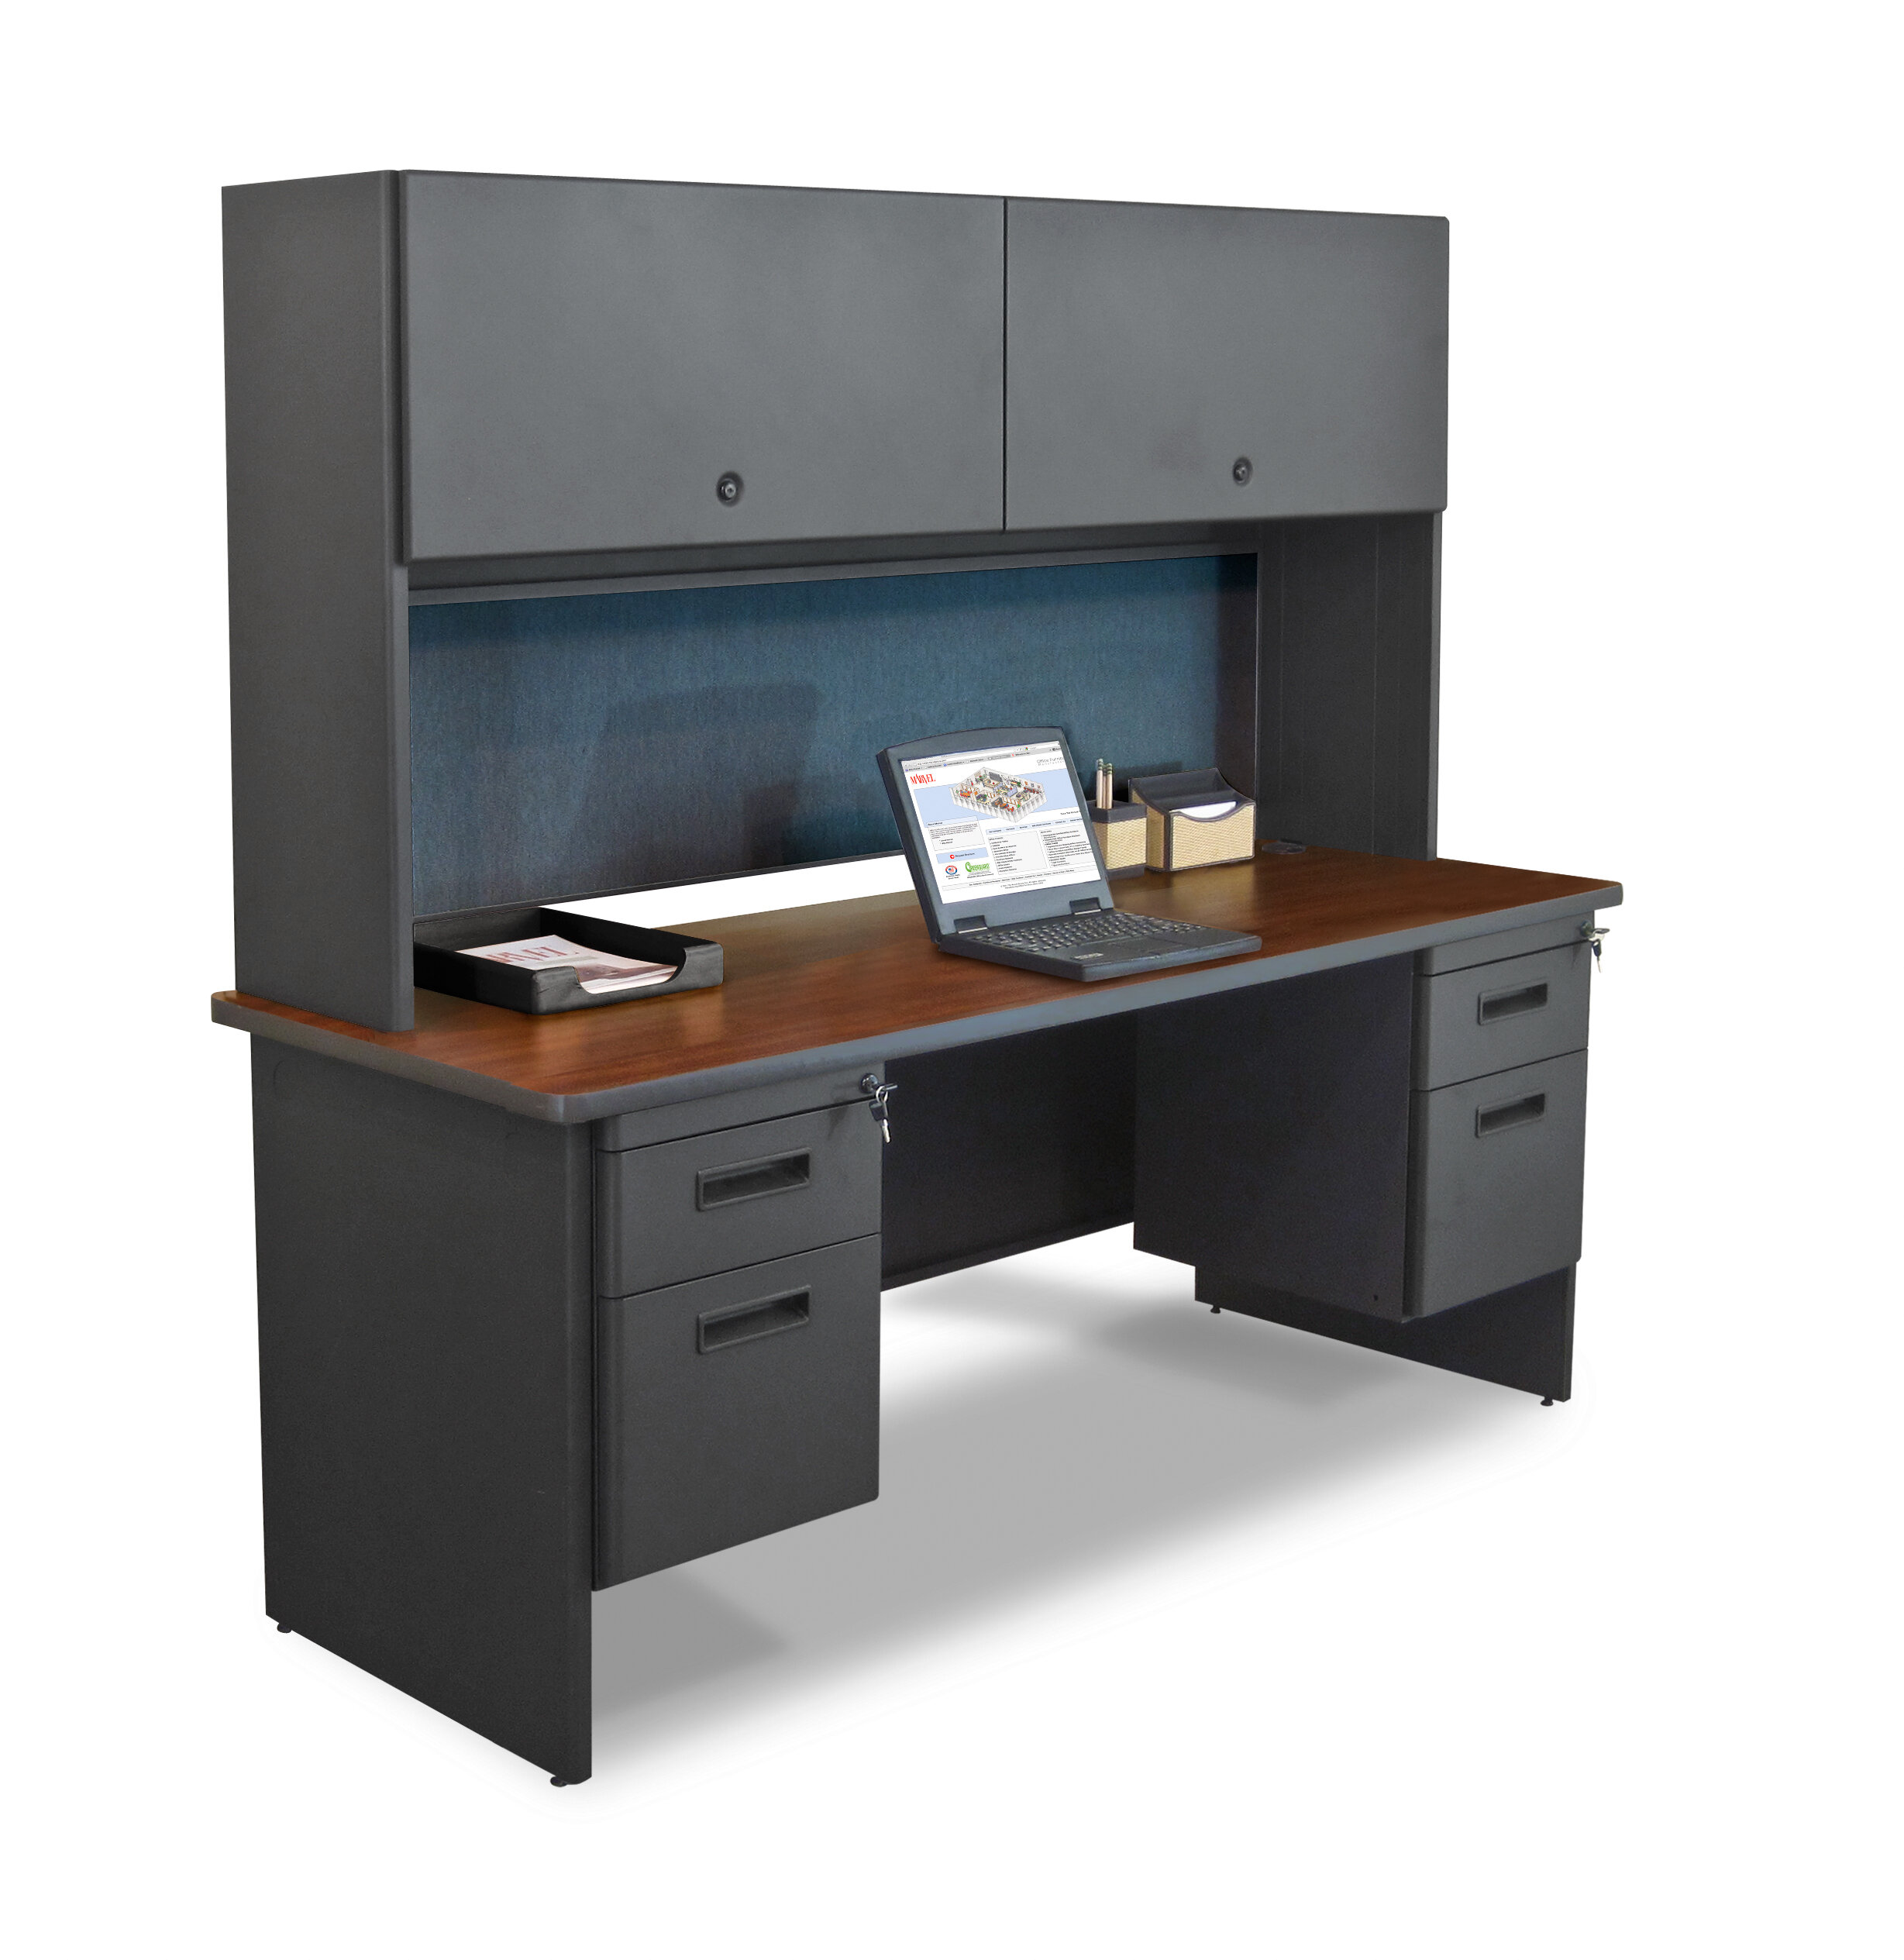 Charmant Marvel Office Furniture Pronto Flipper Door Cabinet And Lock Computer Desk  With Hutch | Wayfair